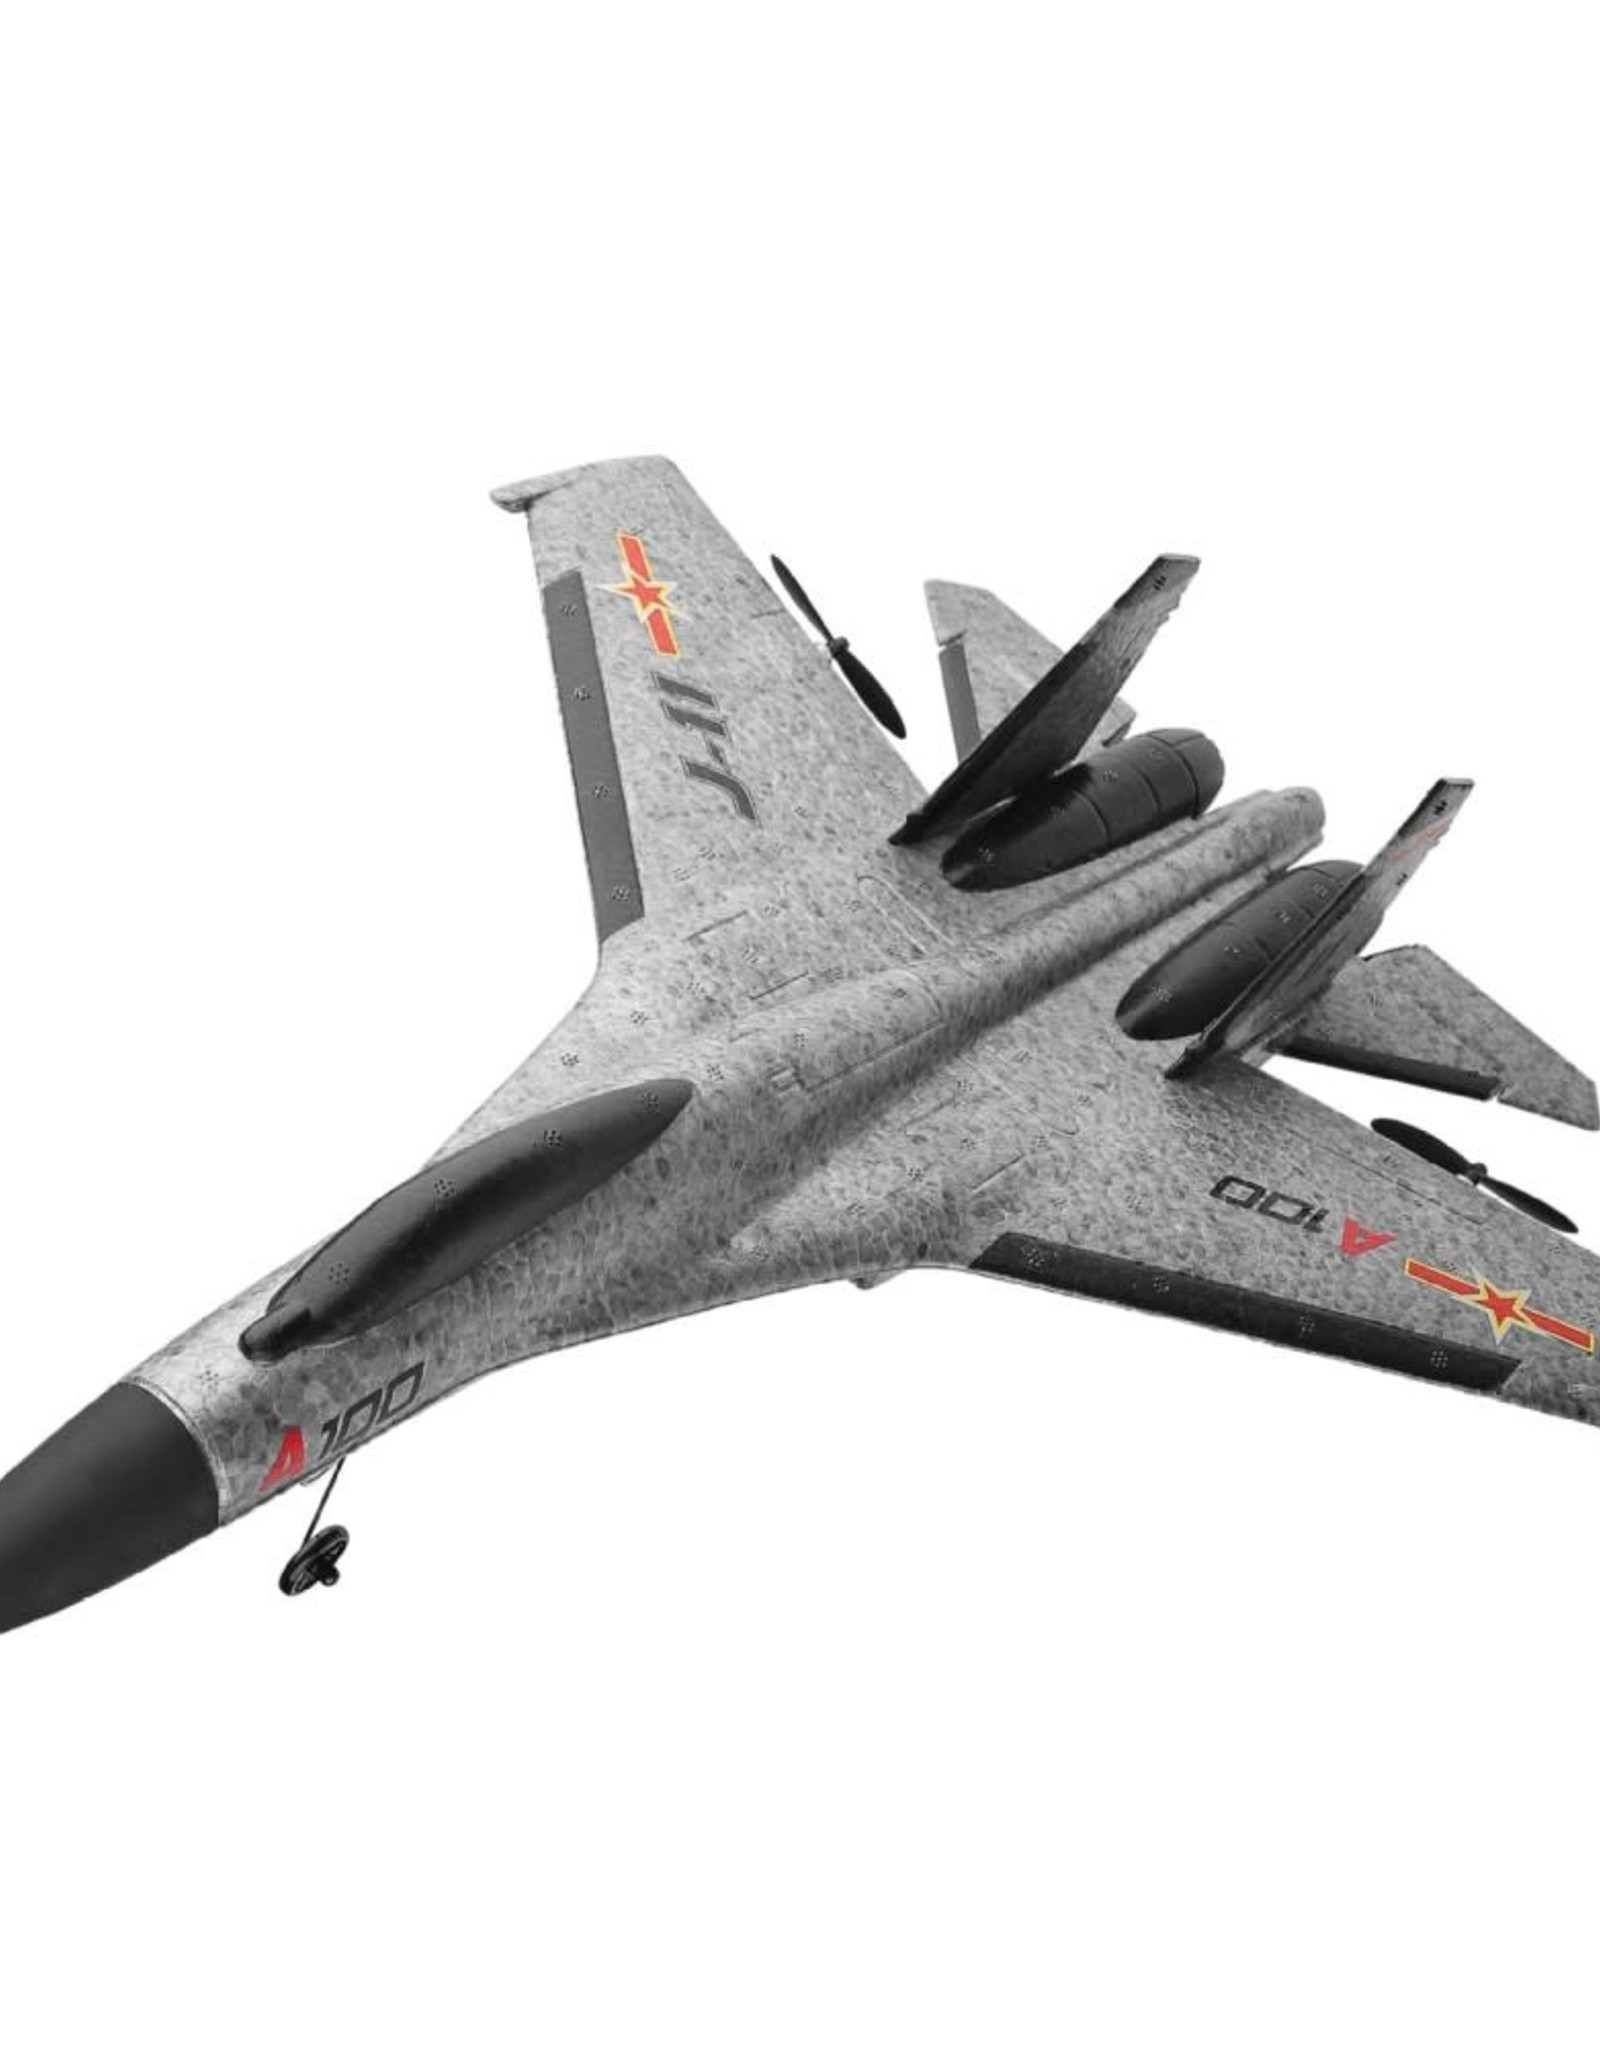 WLTOYS A100-J11 EPP 340mm Wingspan 2.4G 3CH RC Airplane Fixed Wing Aircraft Plane Toy - Grey